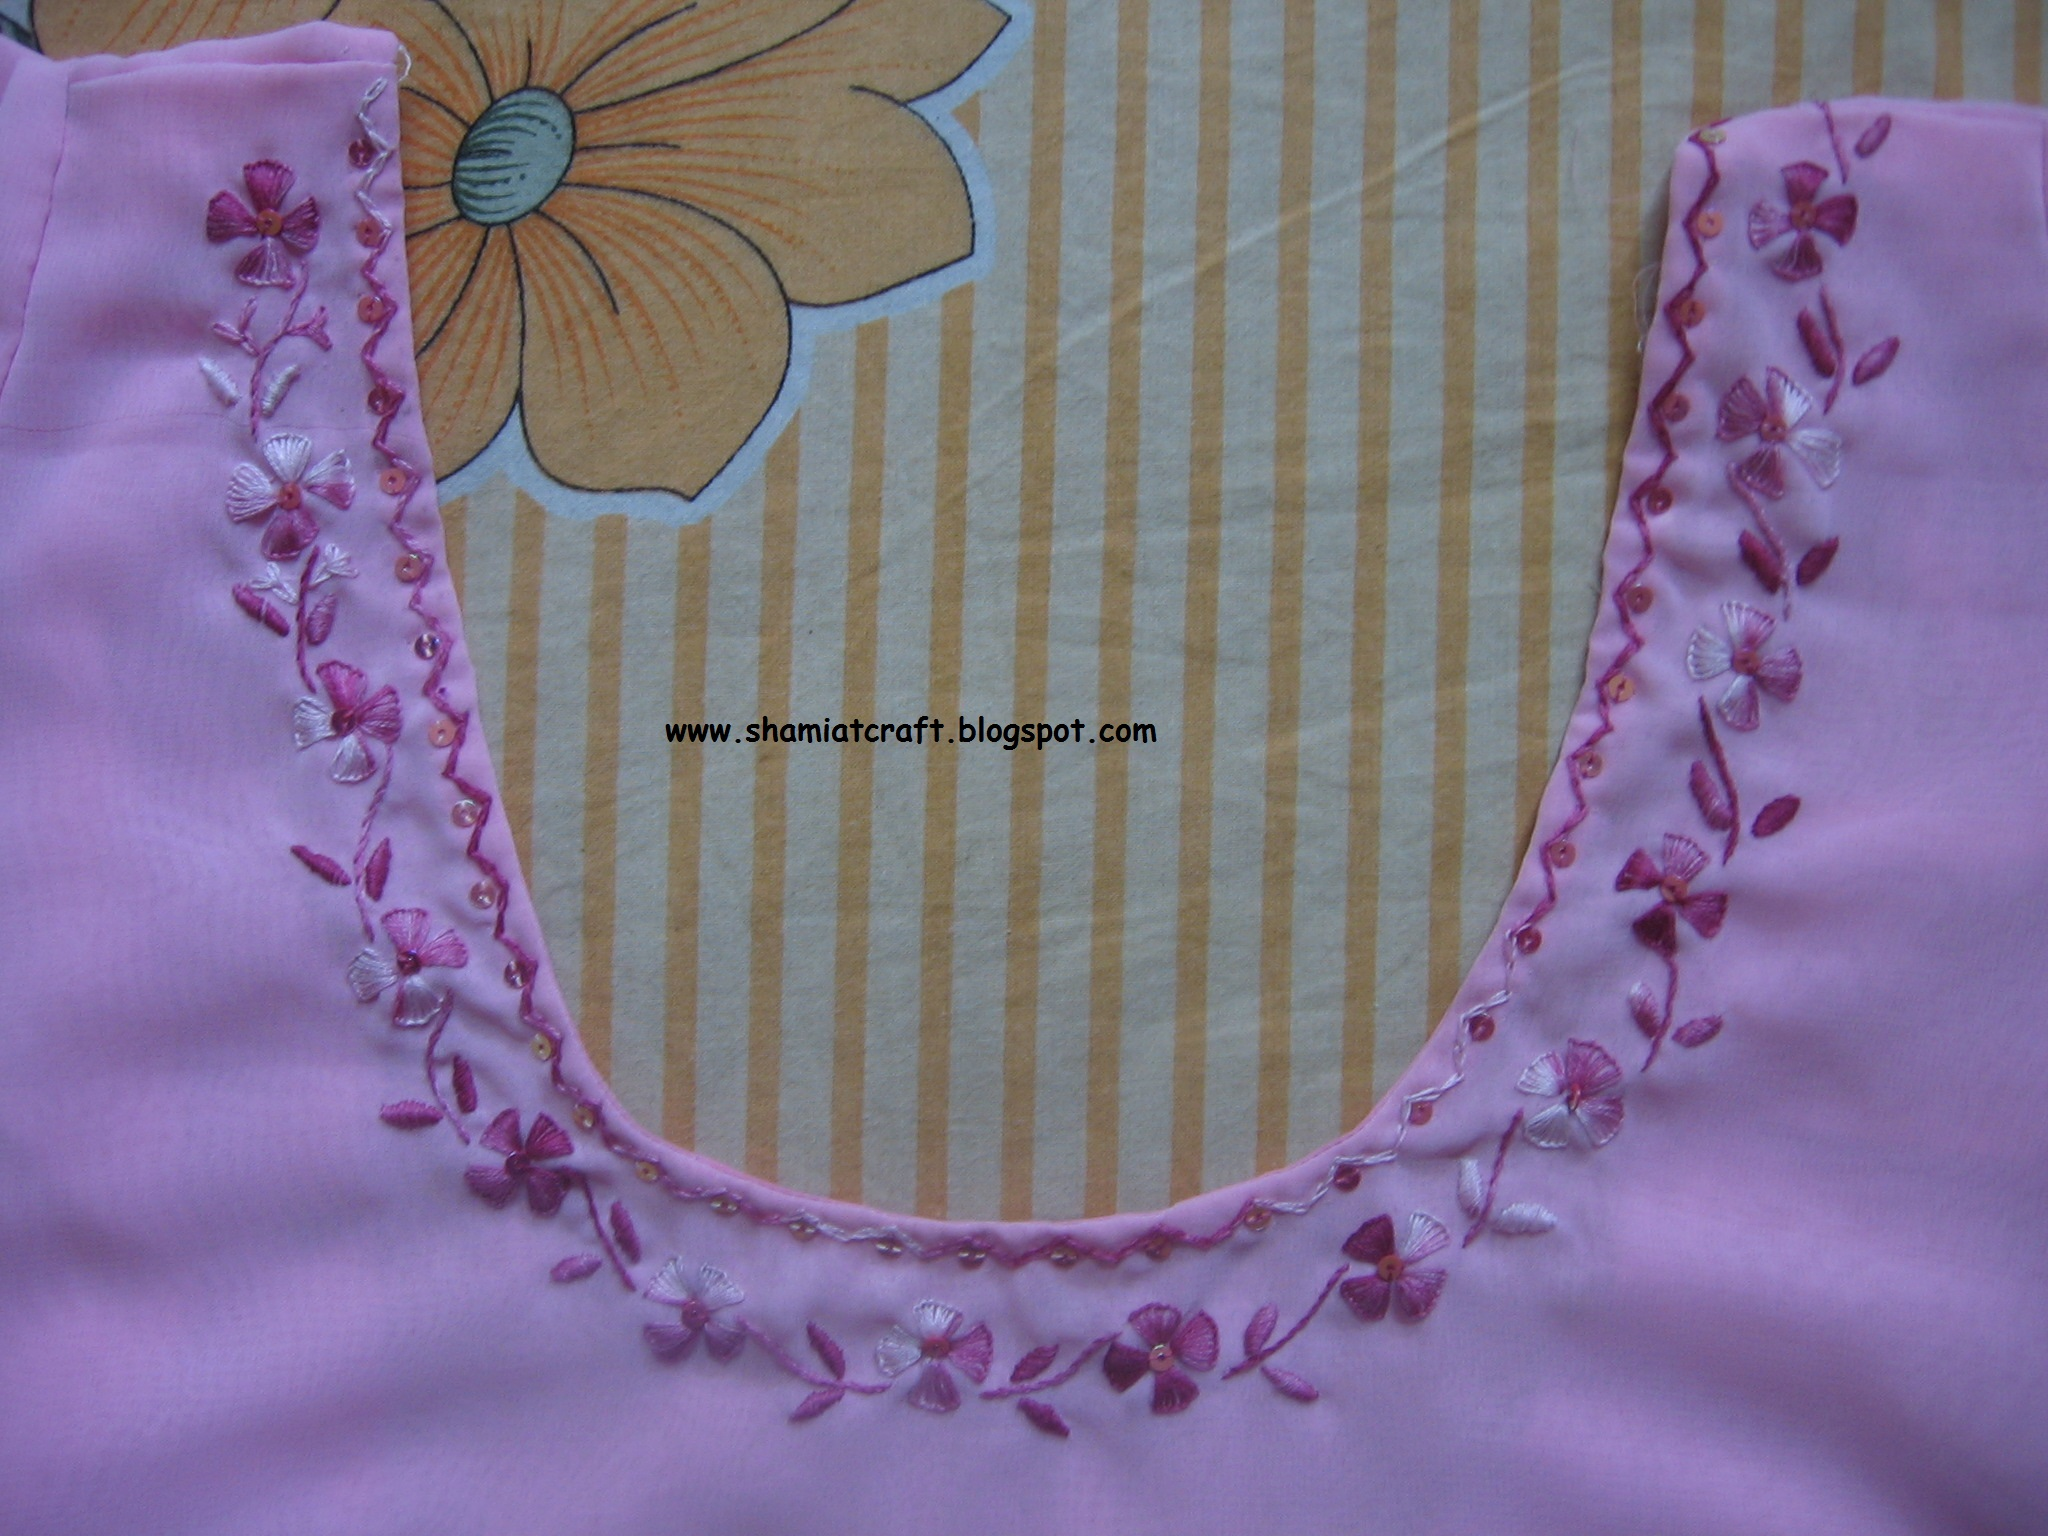 Here Is My Another Project With Buttonhole Stitch For Flowers